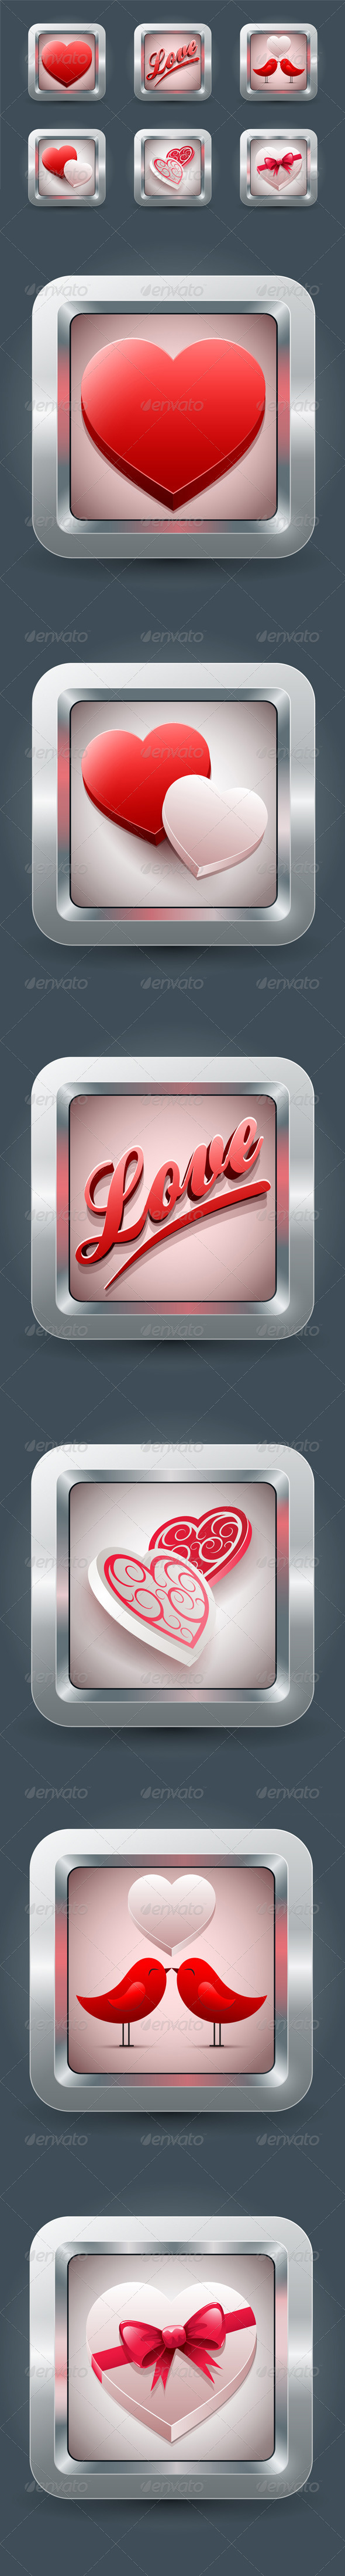 GraphicRiver Valentine s Day Love icon Collection 3758834